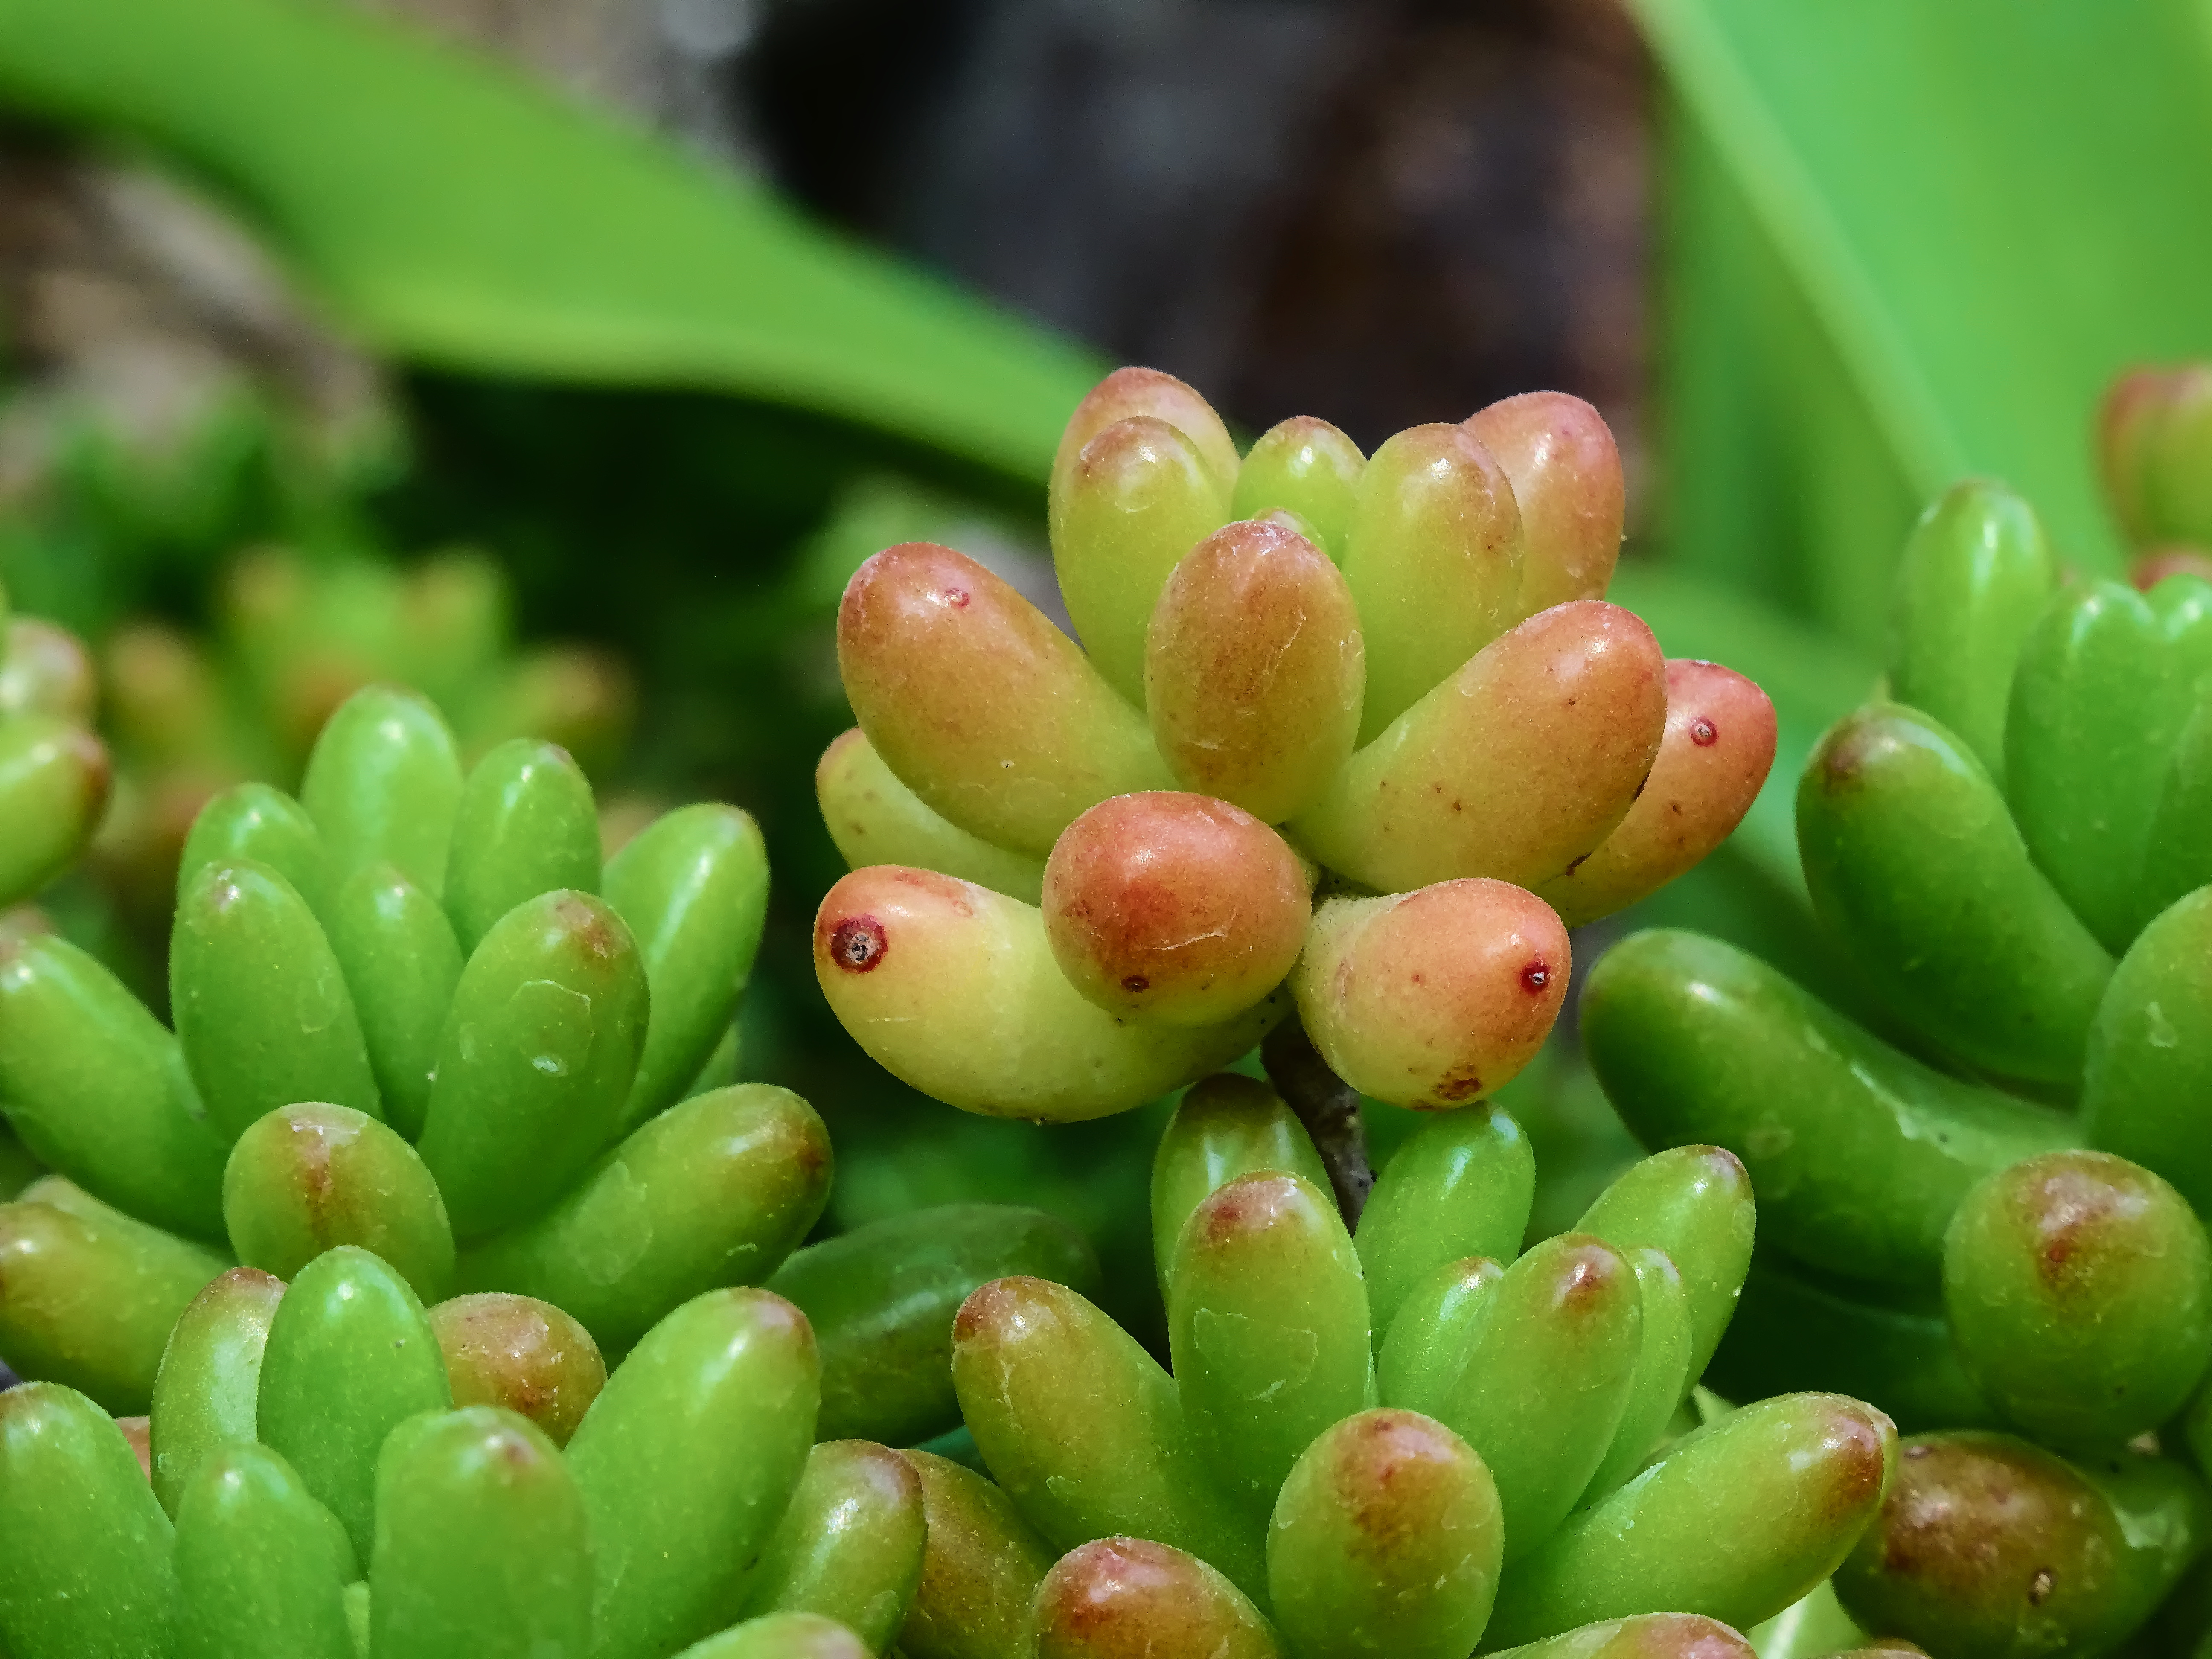 Jelly bean plant, Nature, Outdoor, Natural, Macro, HQ Photo